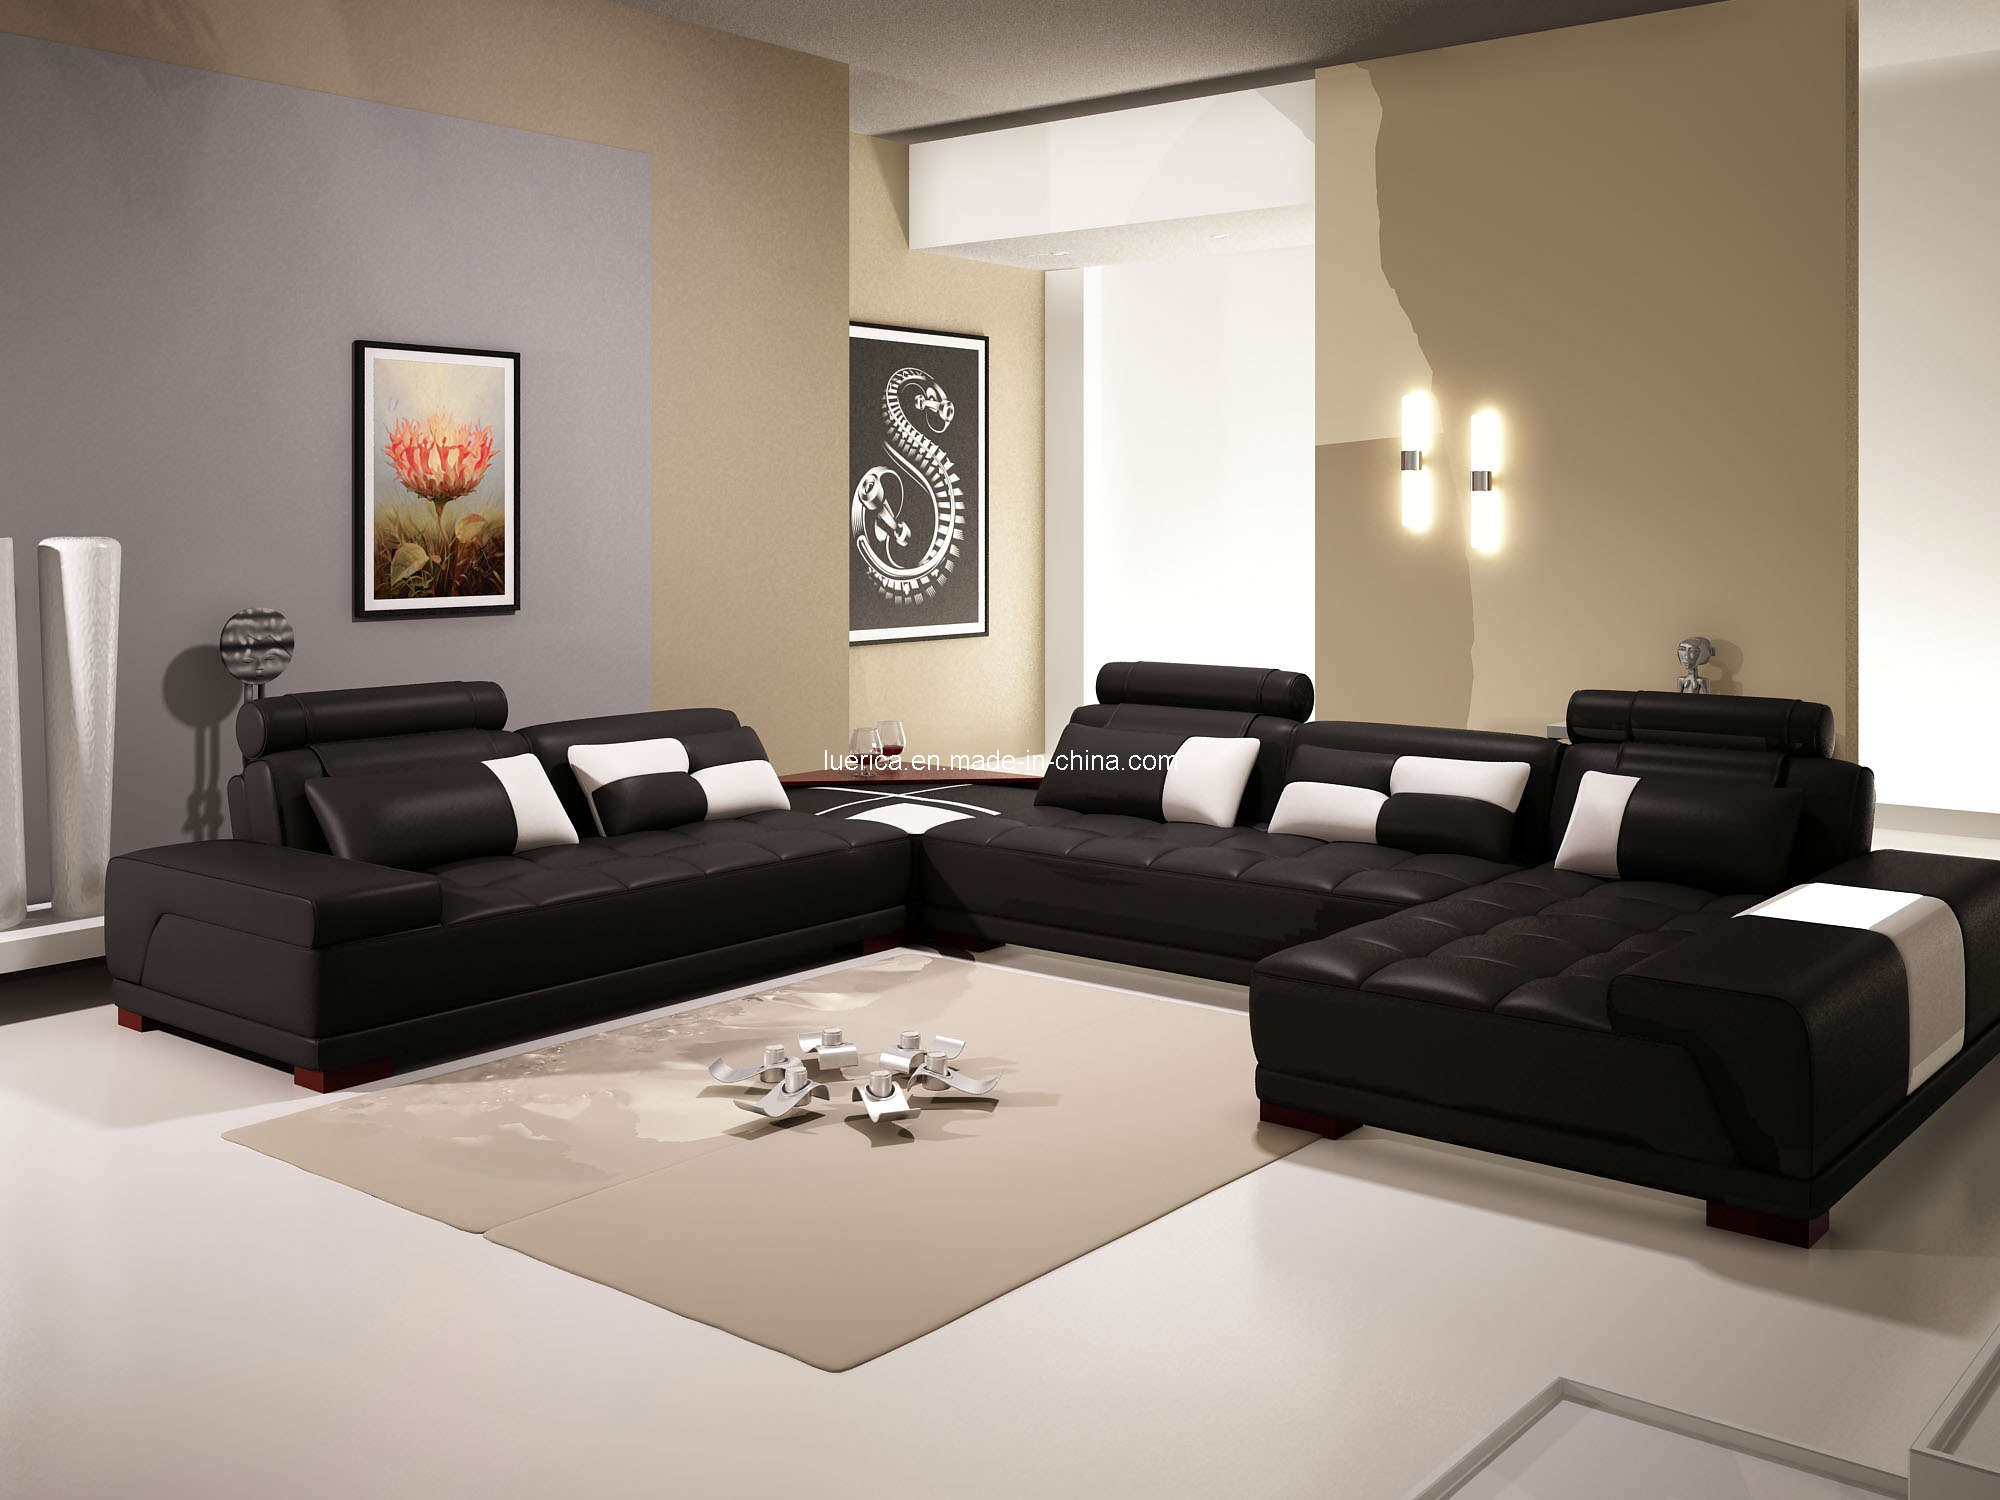 elegant leather cheap sectional sofas in black on white ceramics floor plus tan carpet matched with tan wall for living room decor ideas